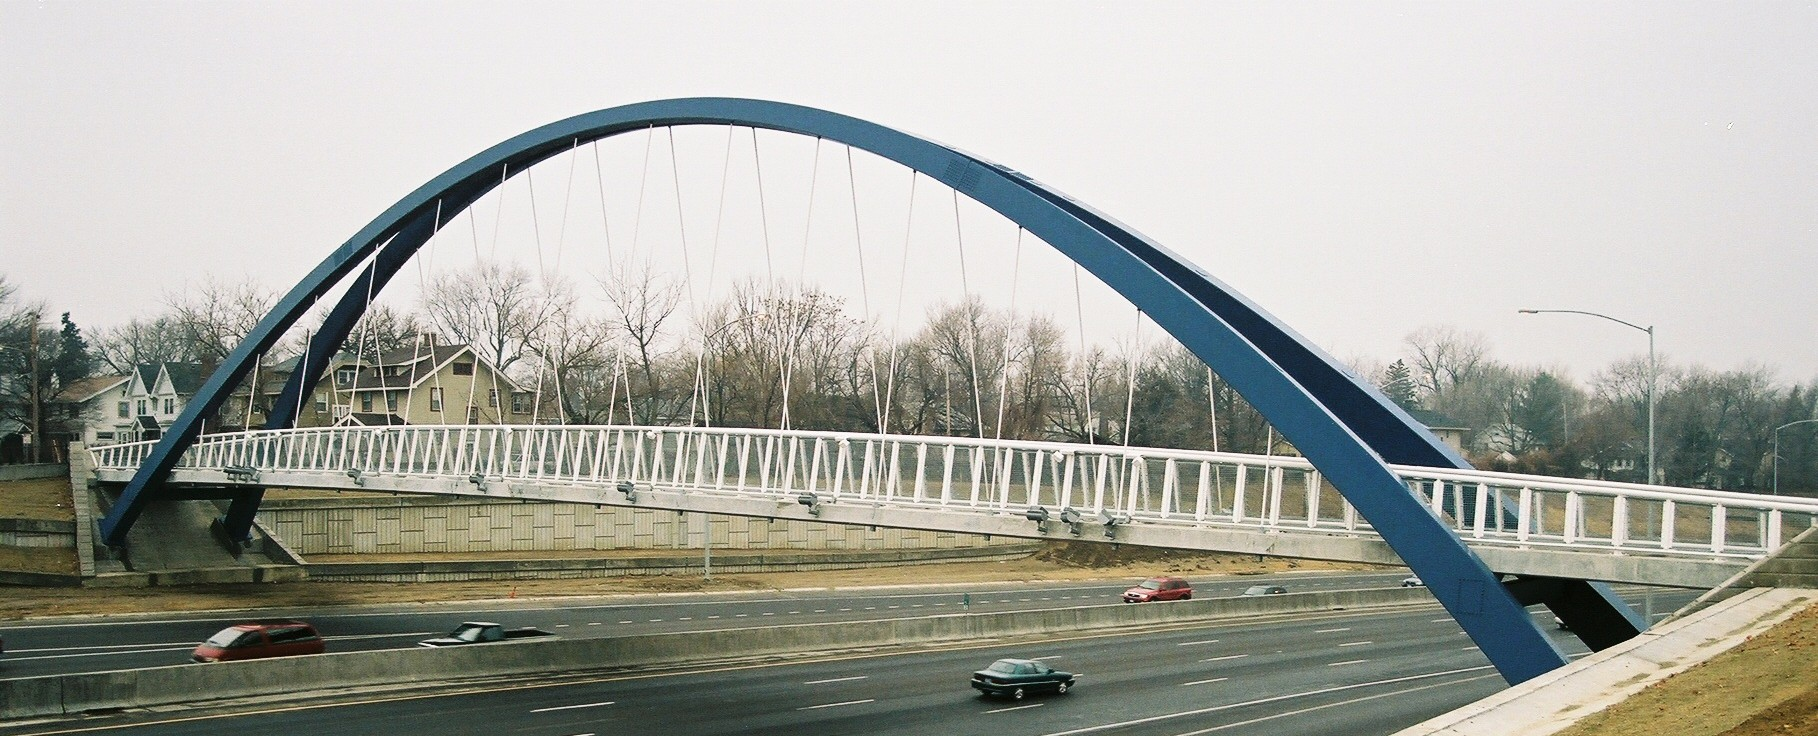 Precast Bridges Precast Prestresssed Concrete For Bridges And Highways Coreslab